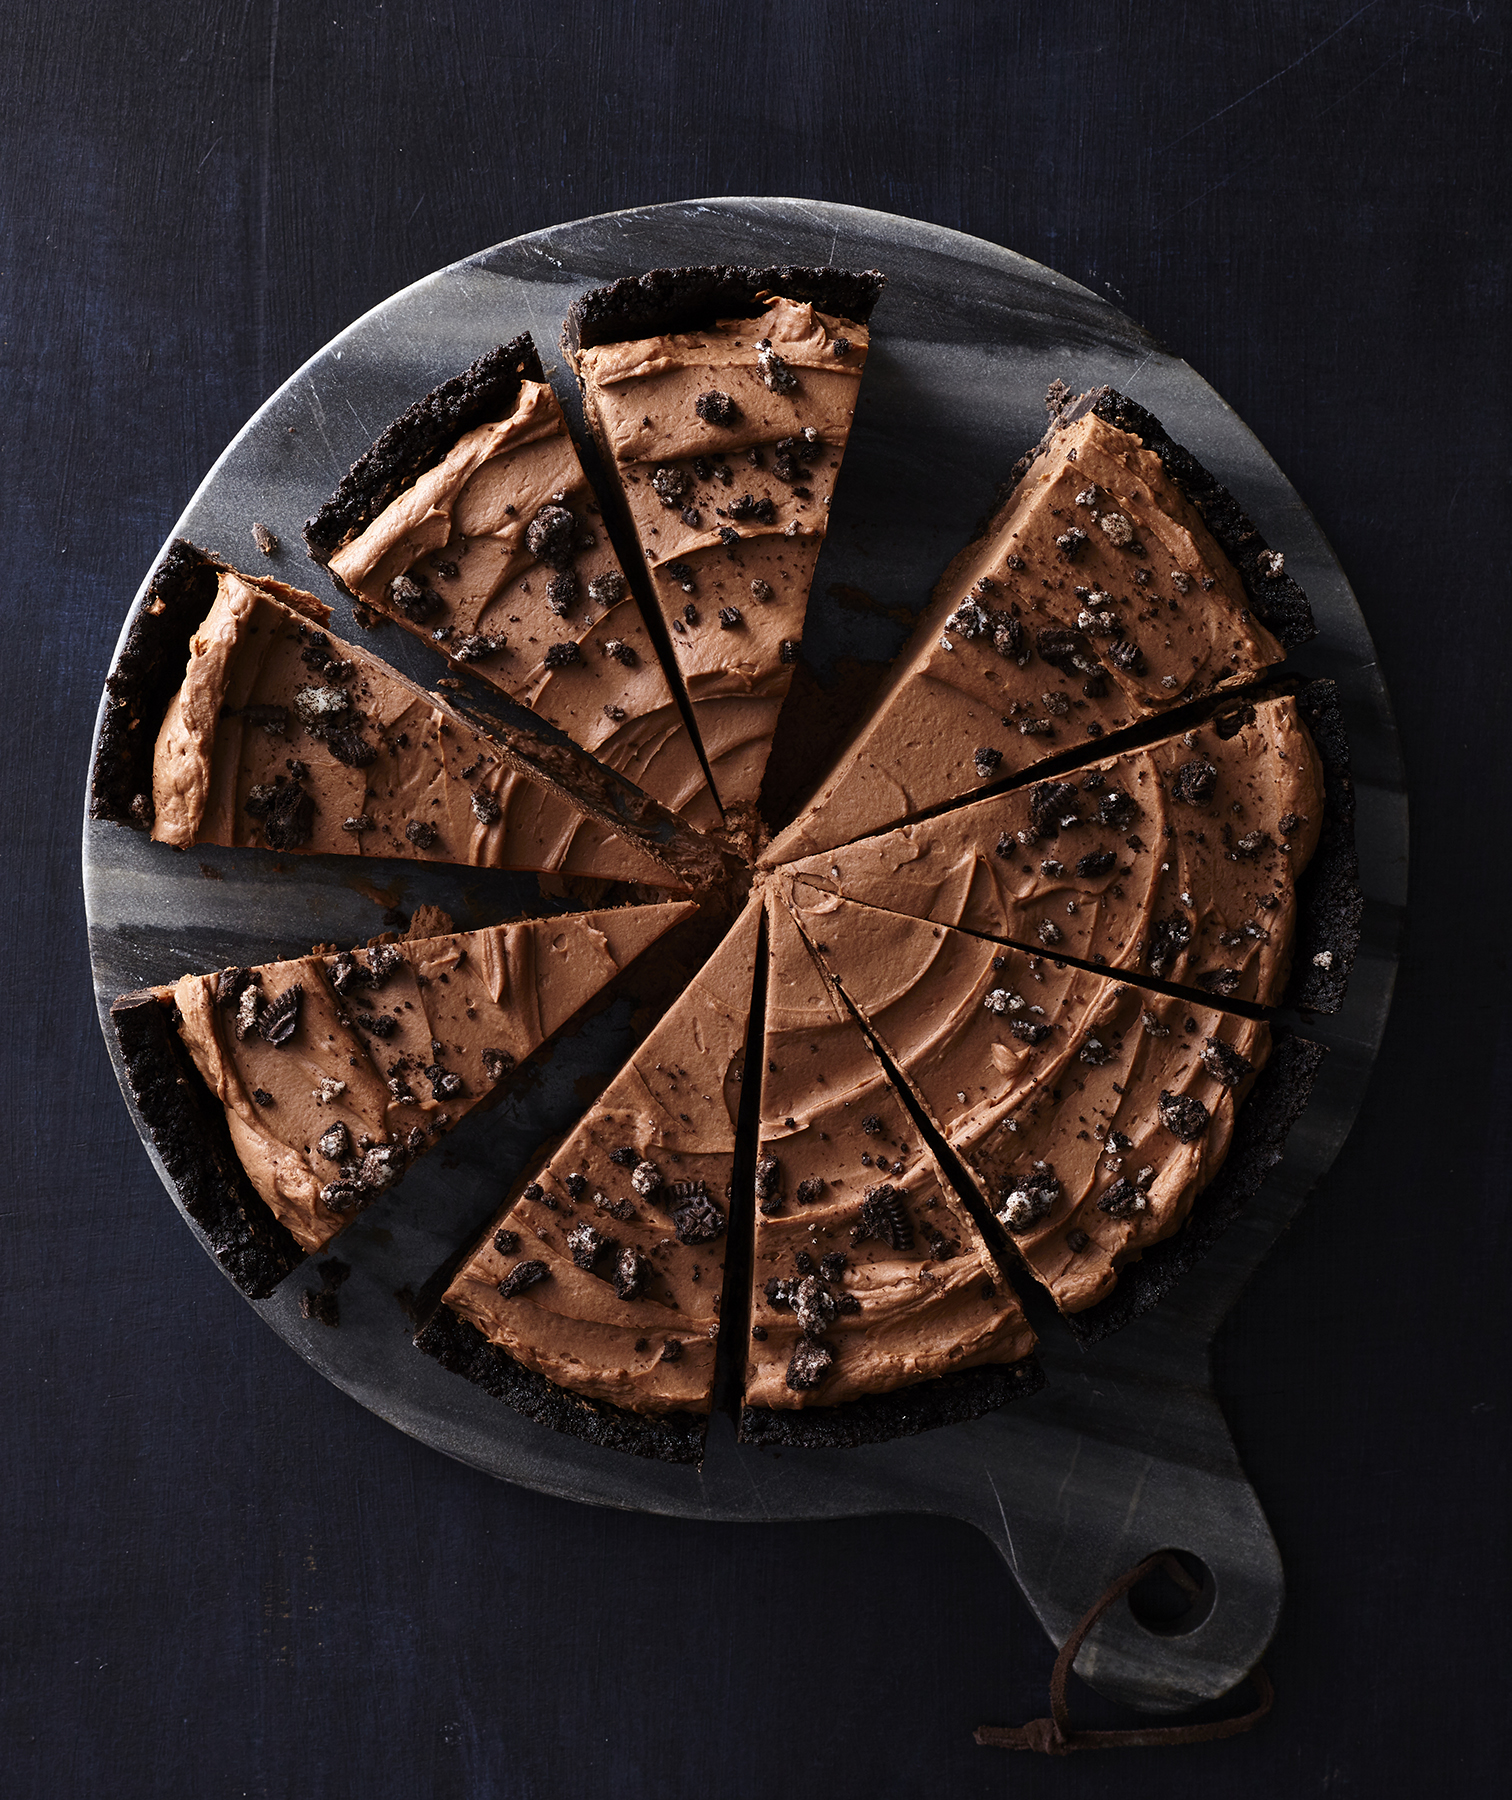 Chocolate Mousse Pie With Oreo Crust